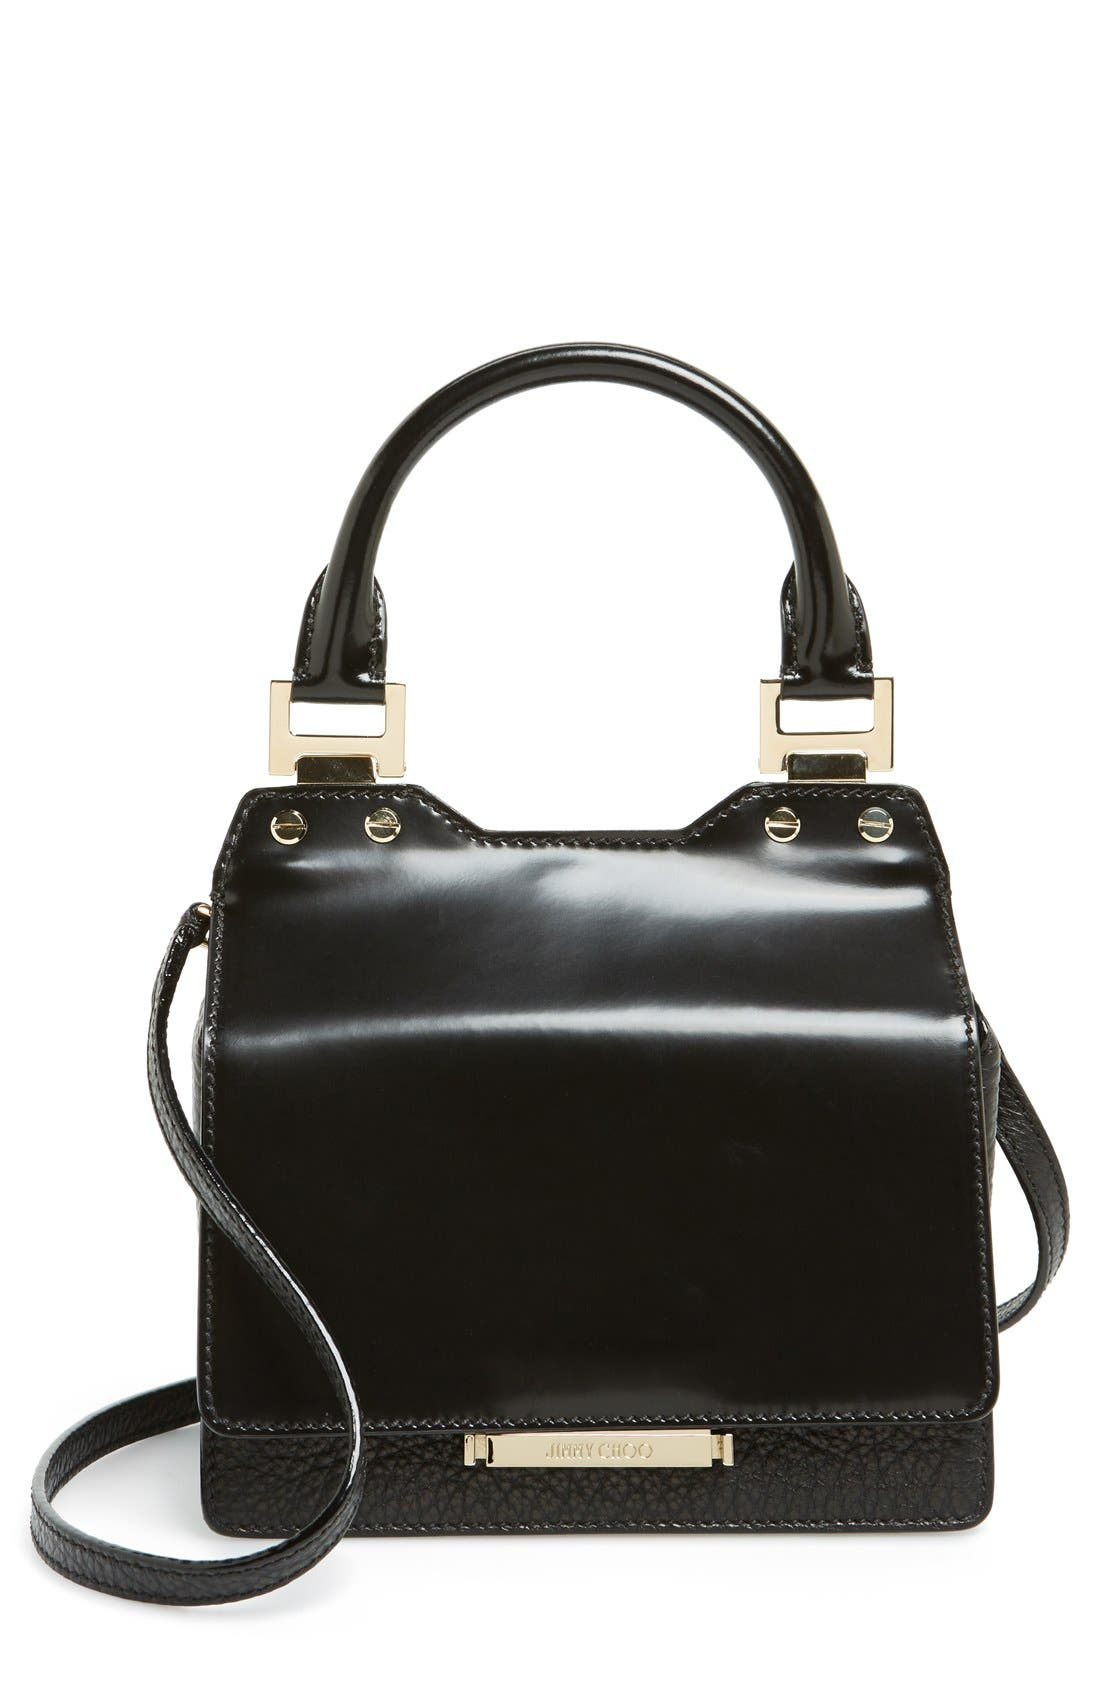 Main Image - Jimmy Choo 'Amie' Top Handle Leather Satchel